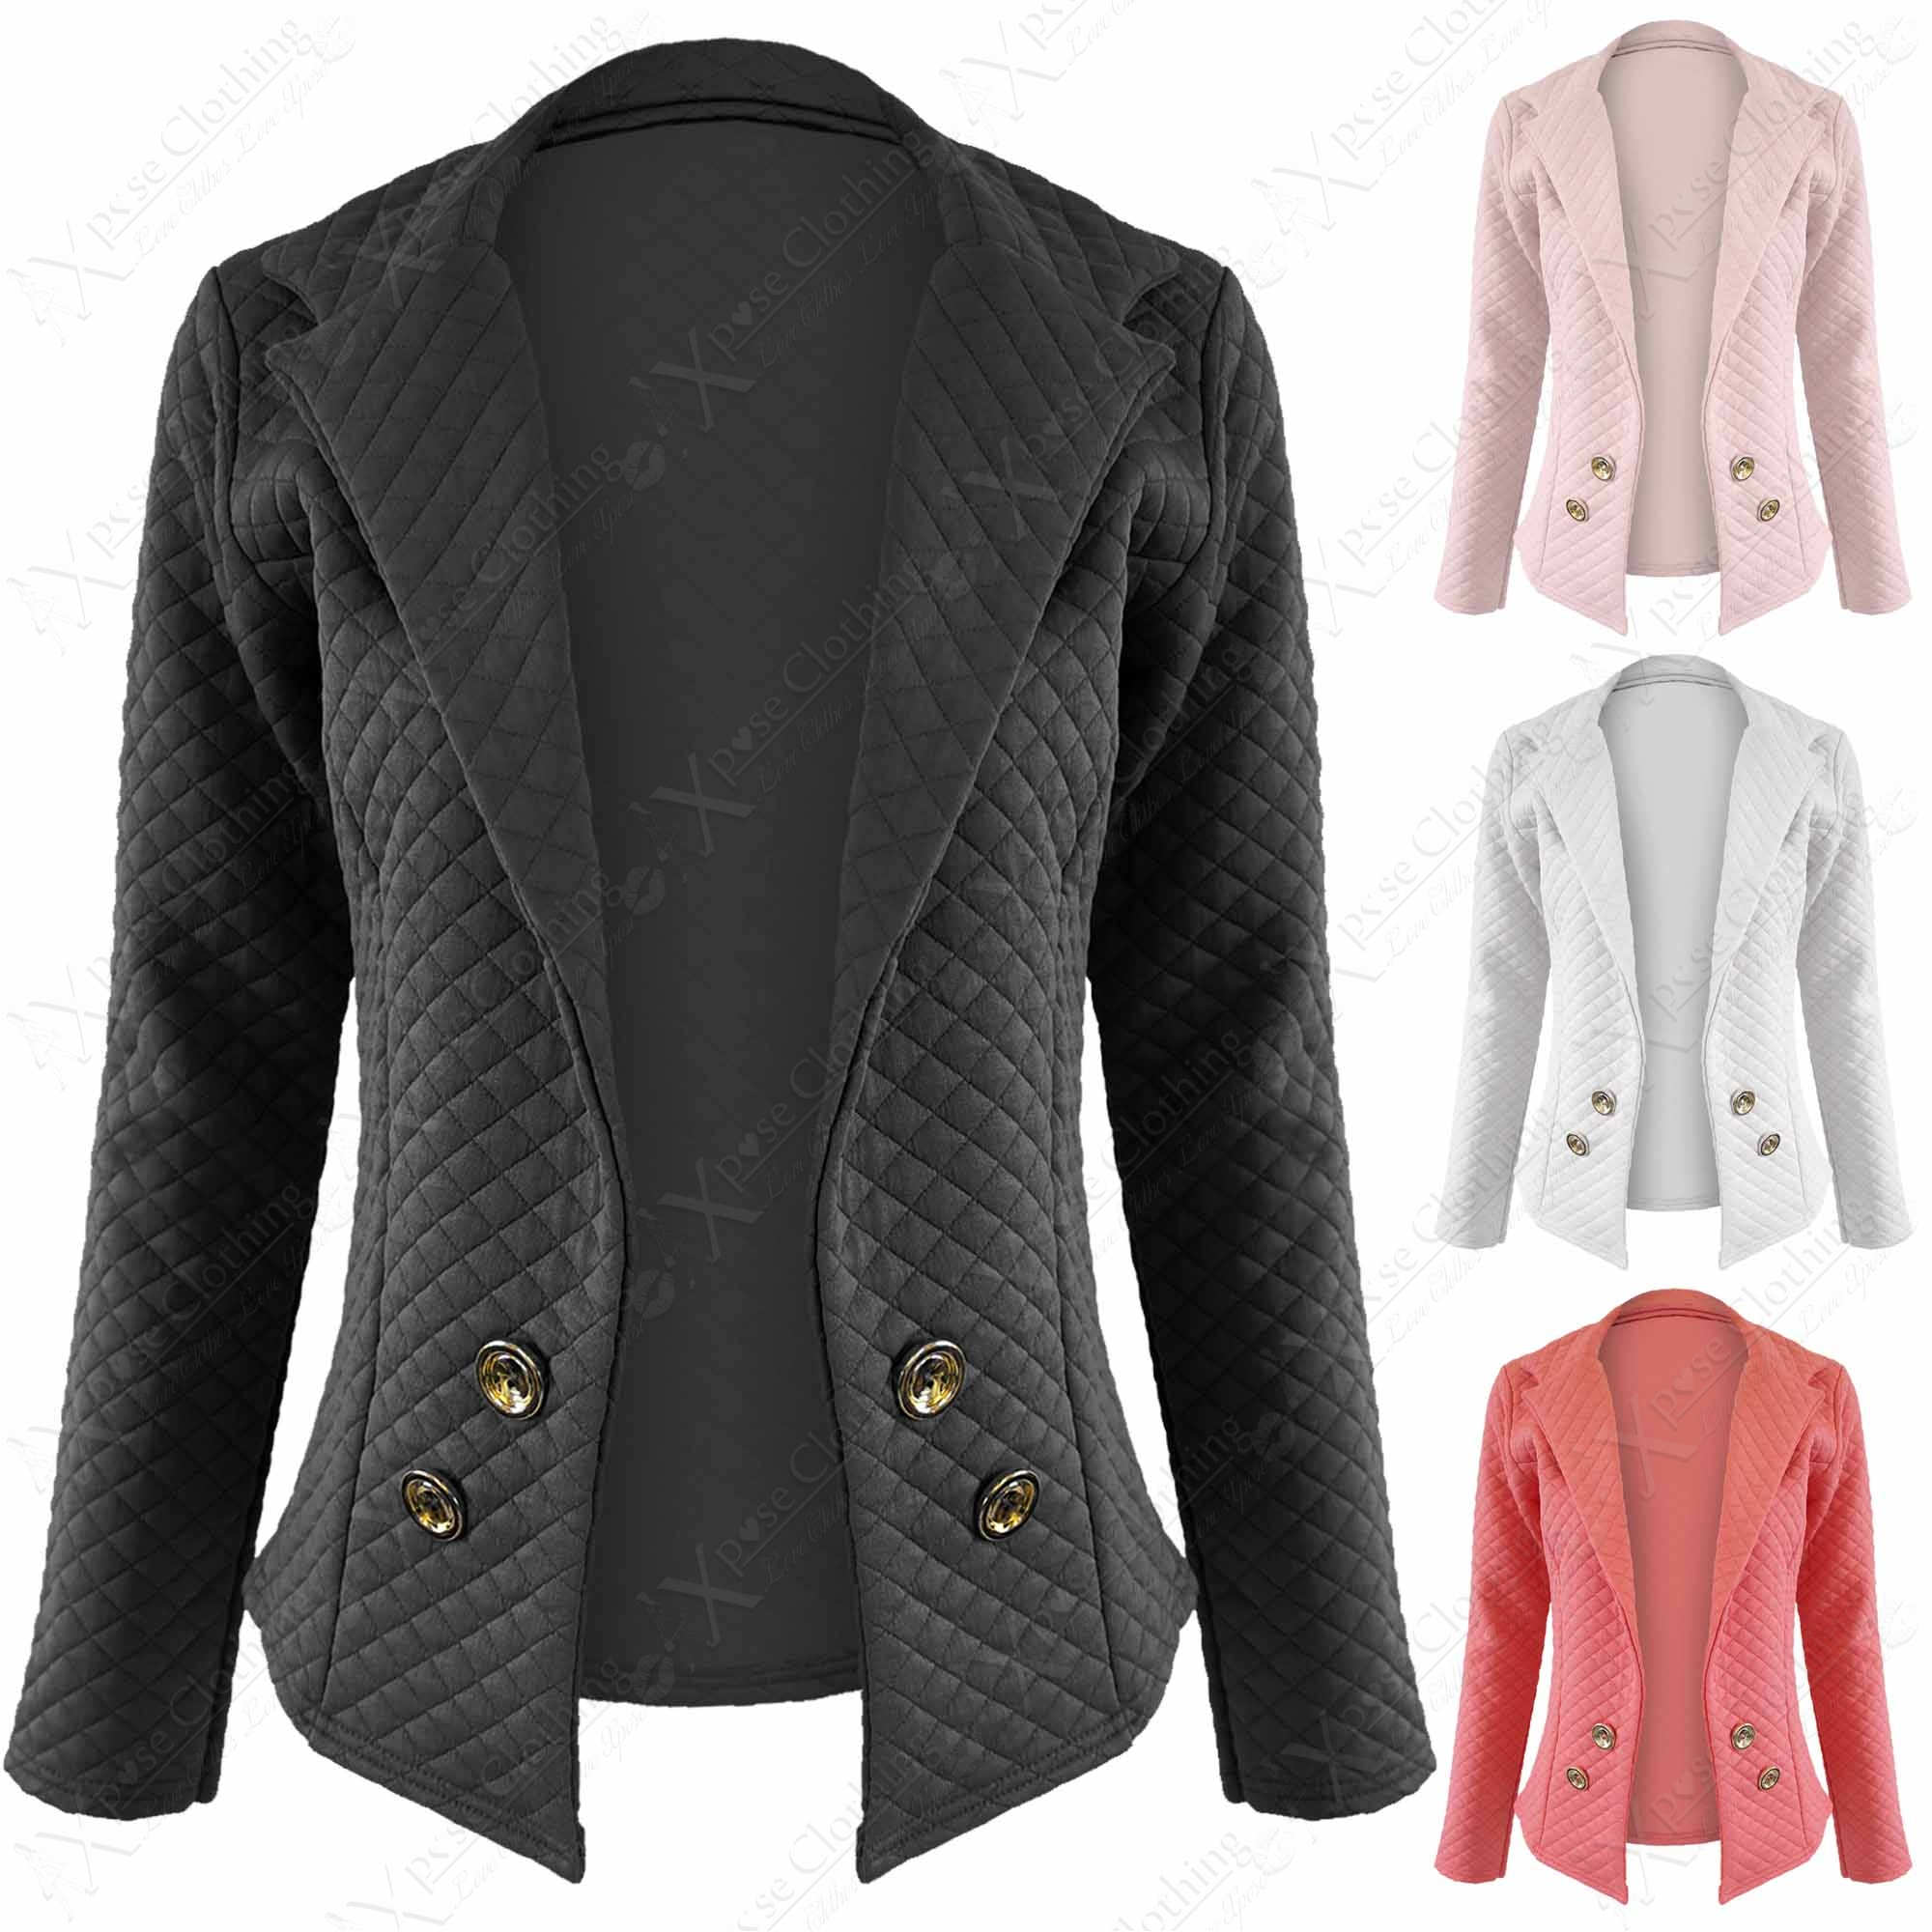 Quilted Blazers: NEW LADIES QUILTED BLAZER WOMENS LONG SLEEVE BUTTON FRONT